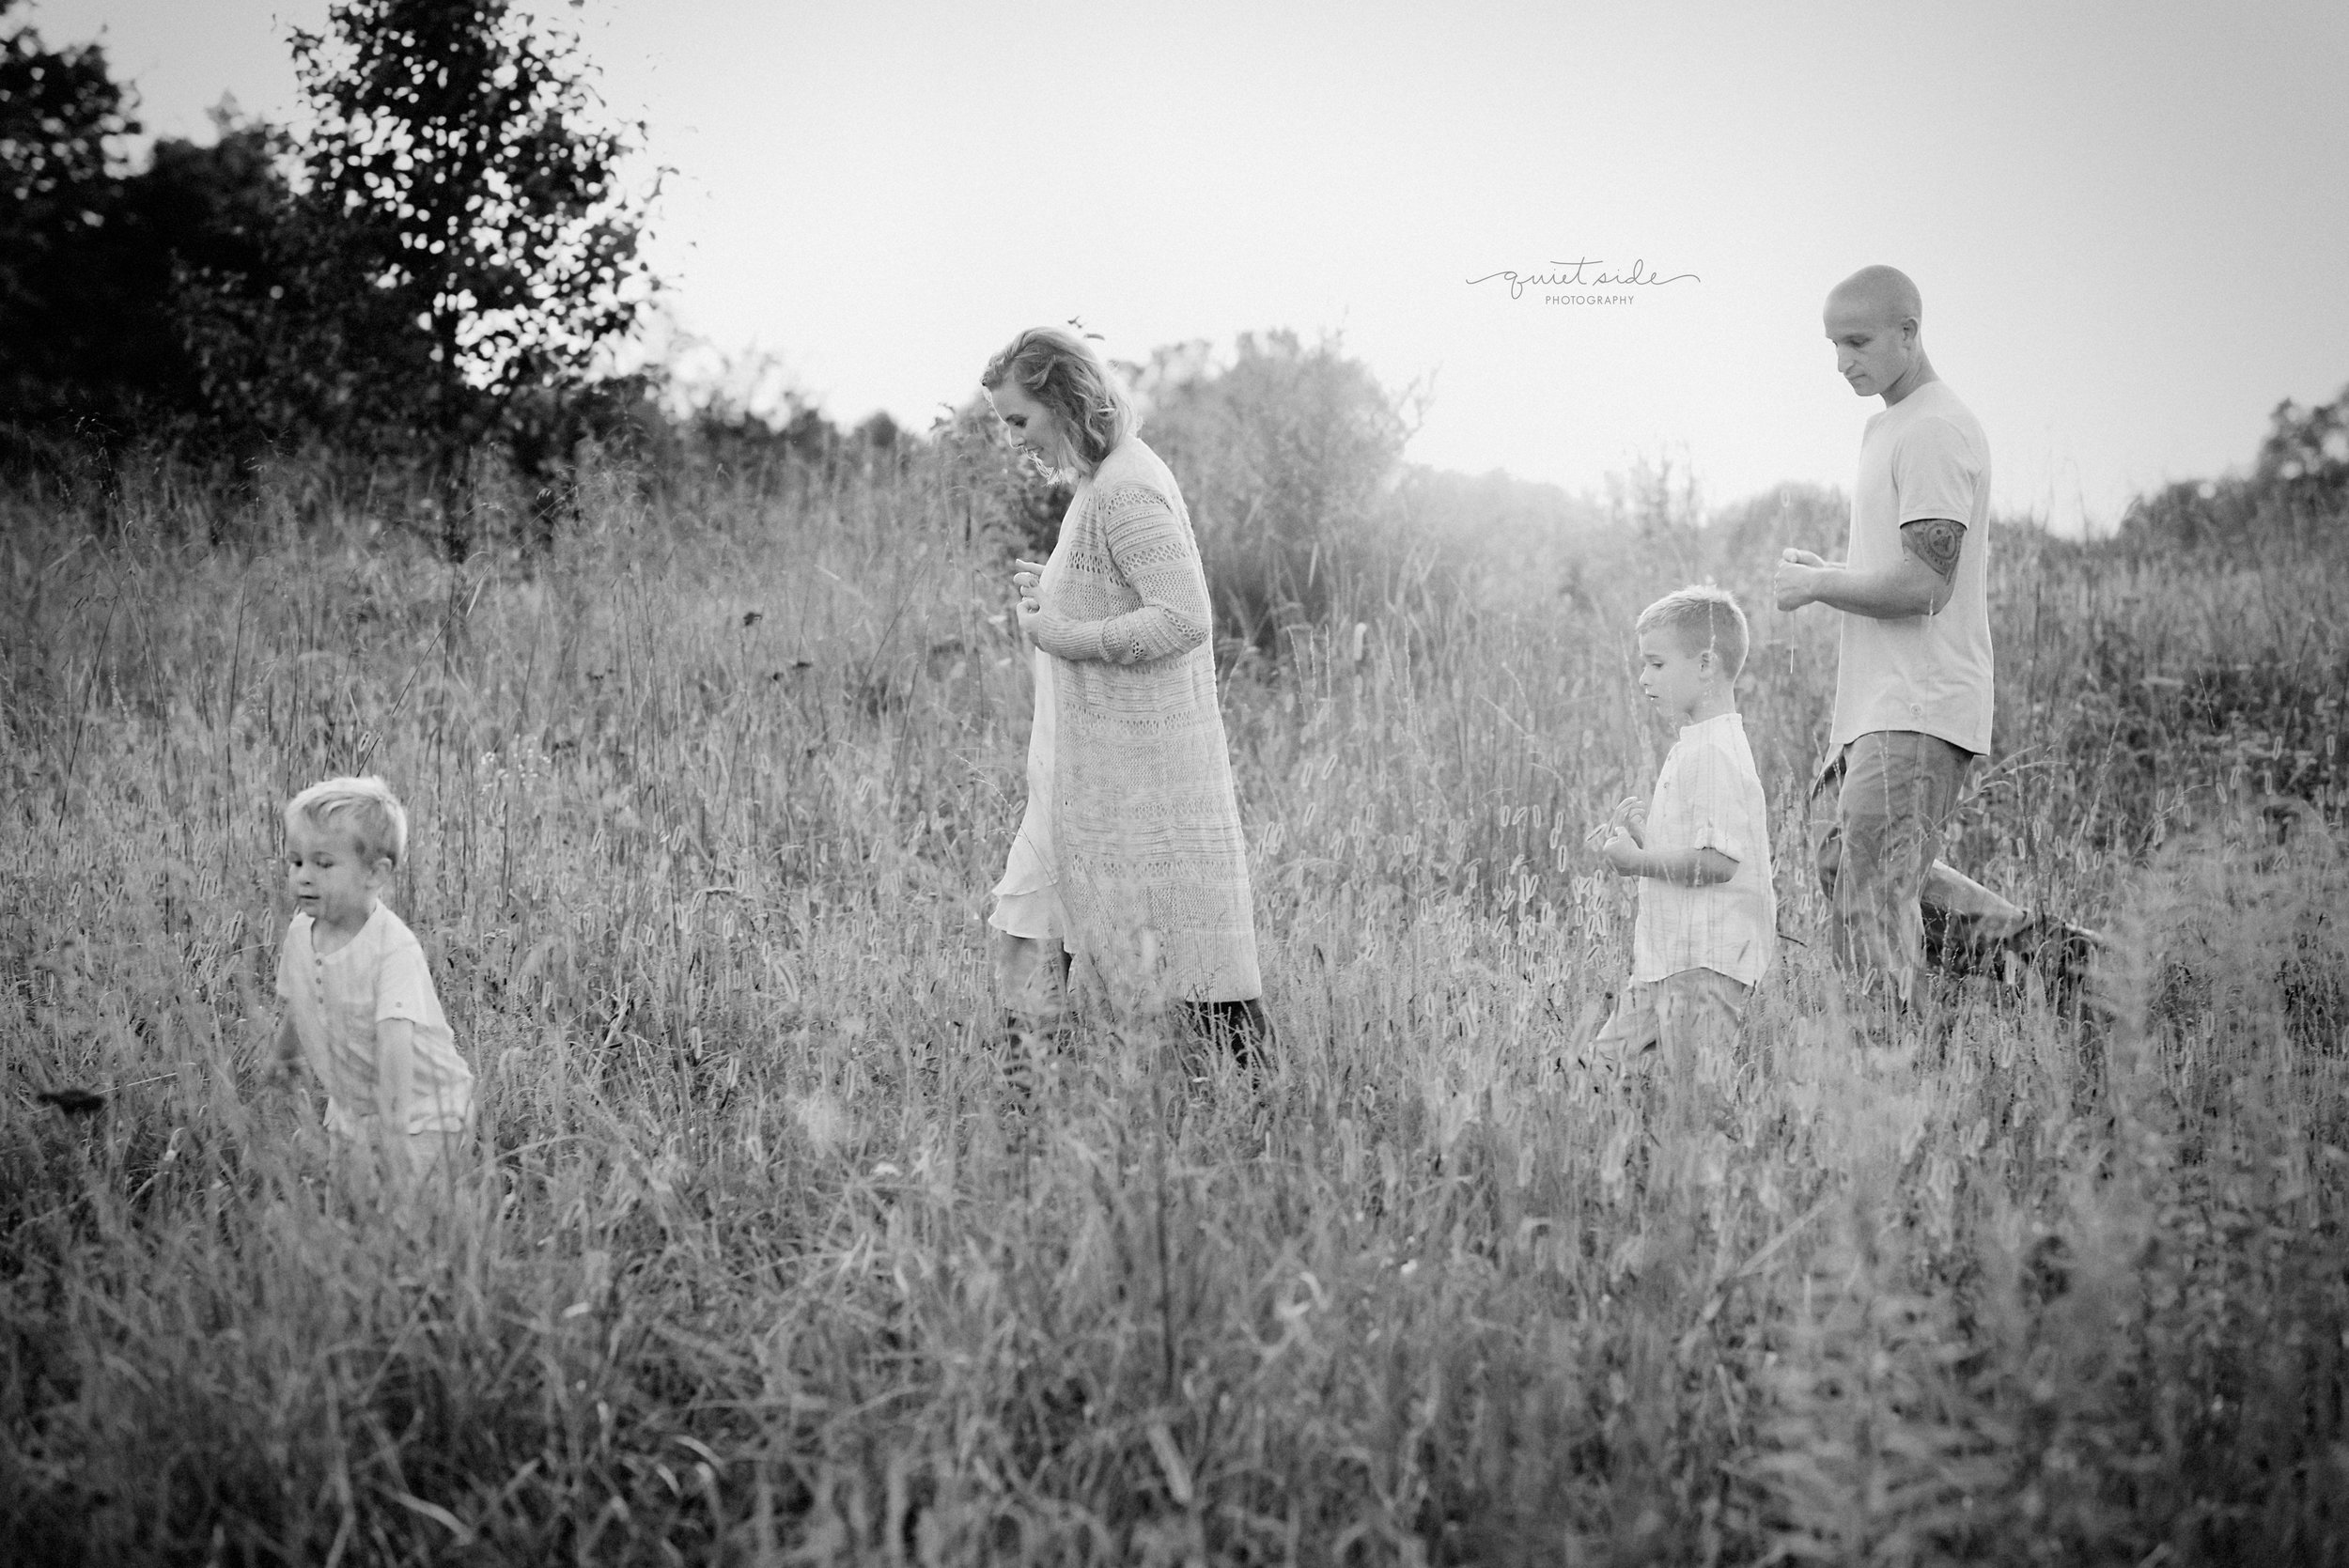 quietsidephotography-Family-Photographer-Loudoun,County,Virginia-NorthernVA-Motherandson-Motherhood-FamilyPhotographer-Sunset-Field-goldenhour-Washington,DC-Gessner.jpg